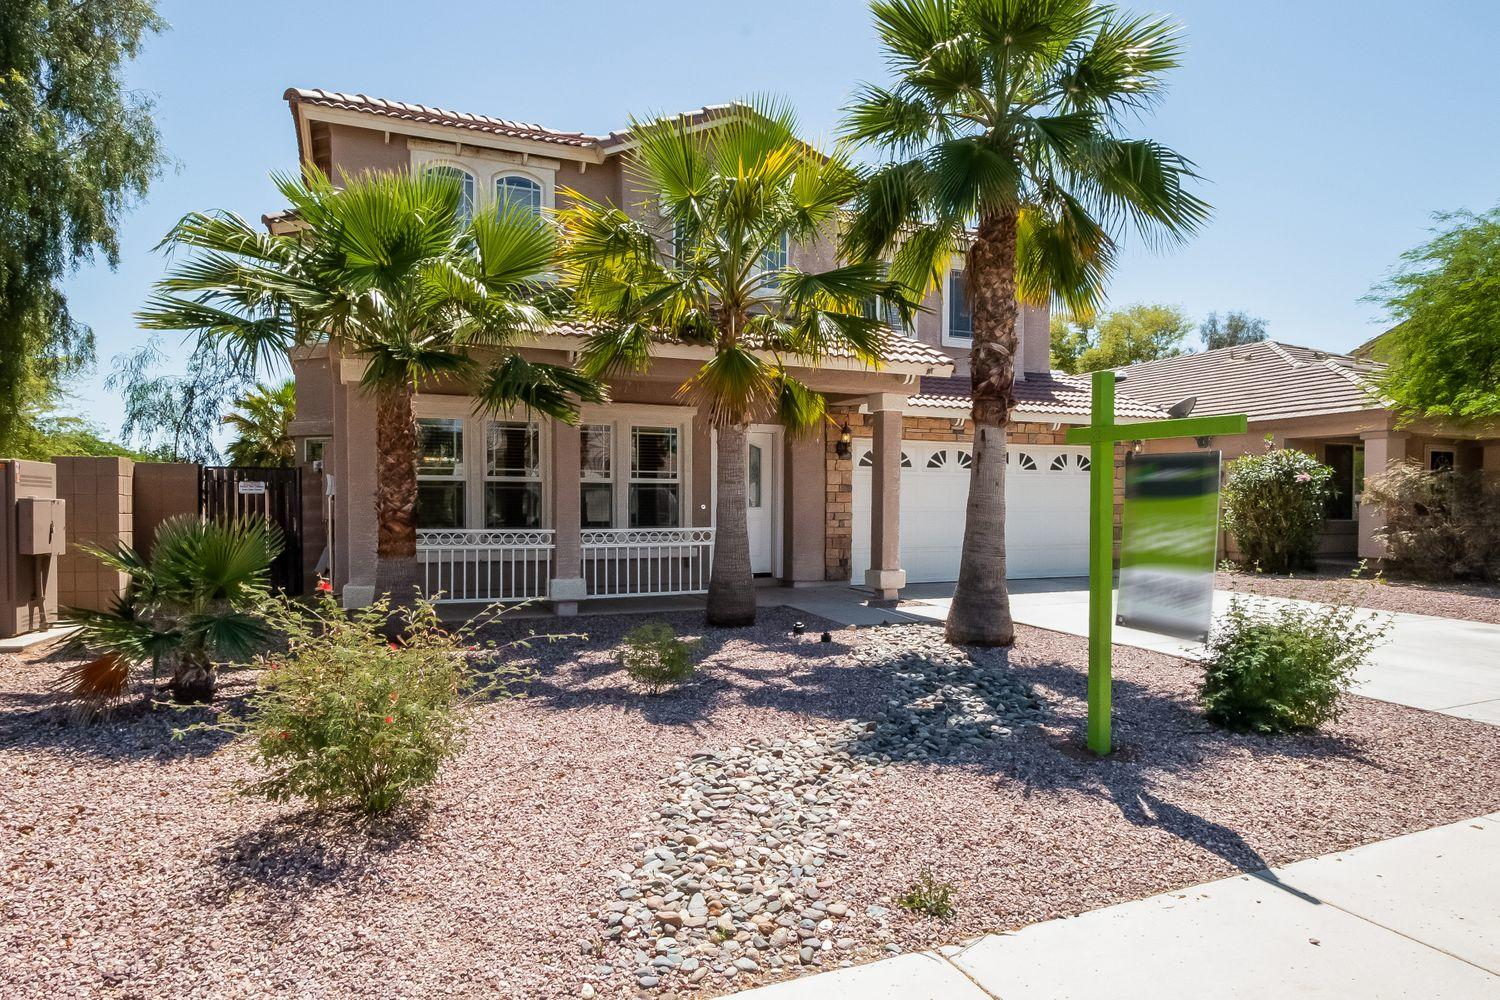 15323 W Jenan Dr, Surprise, AZ 85379 - 3 5 Bath Single